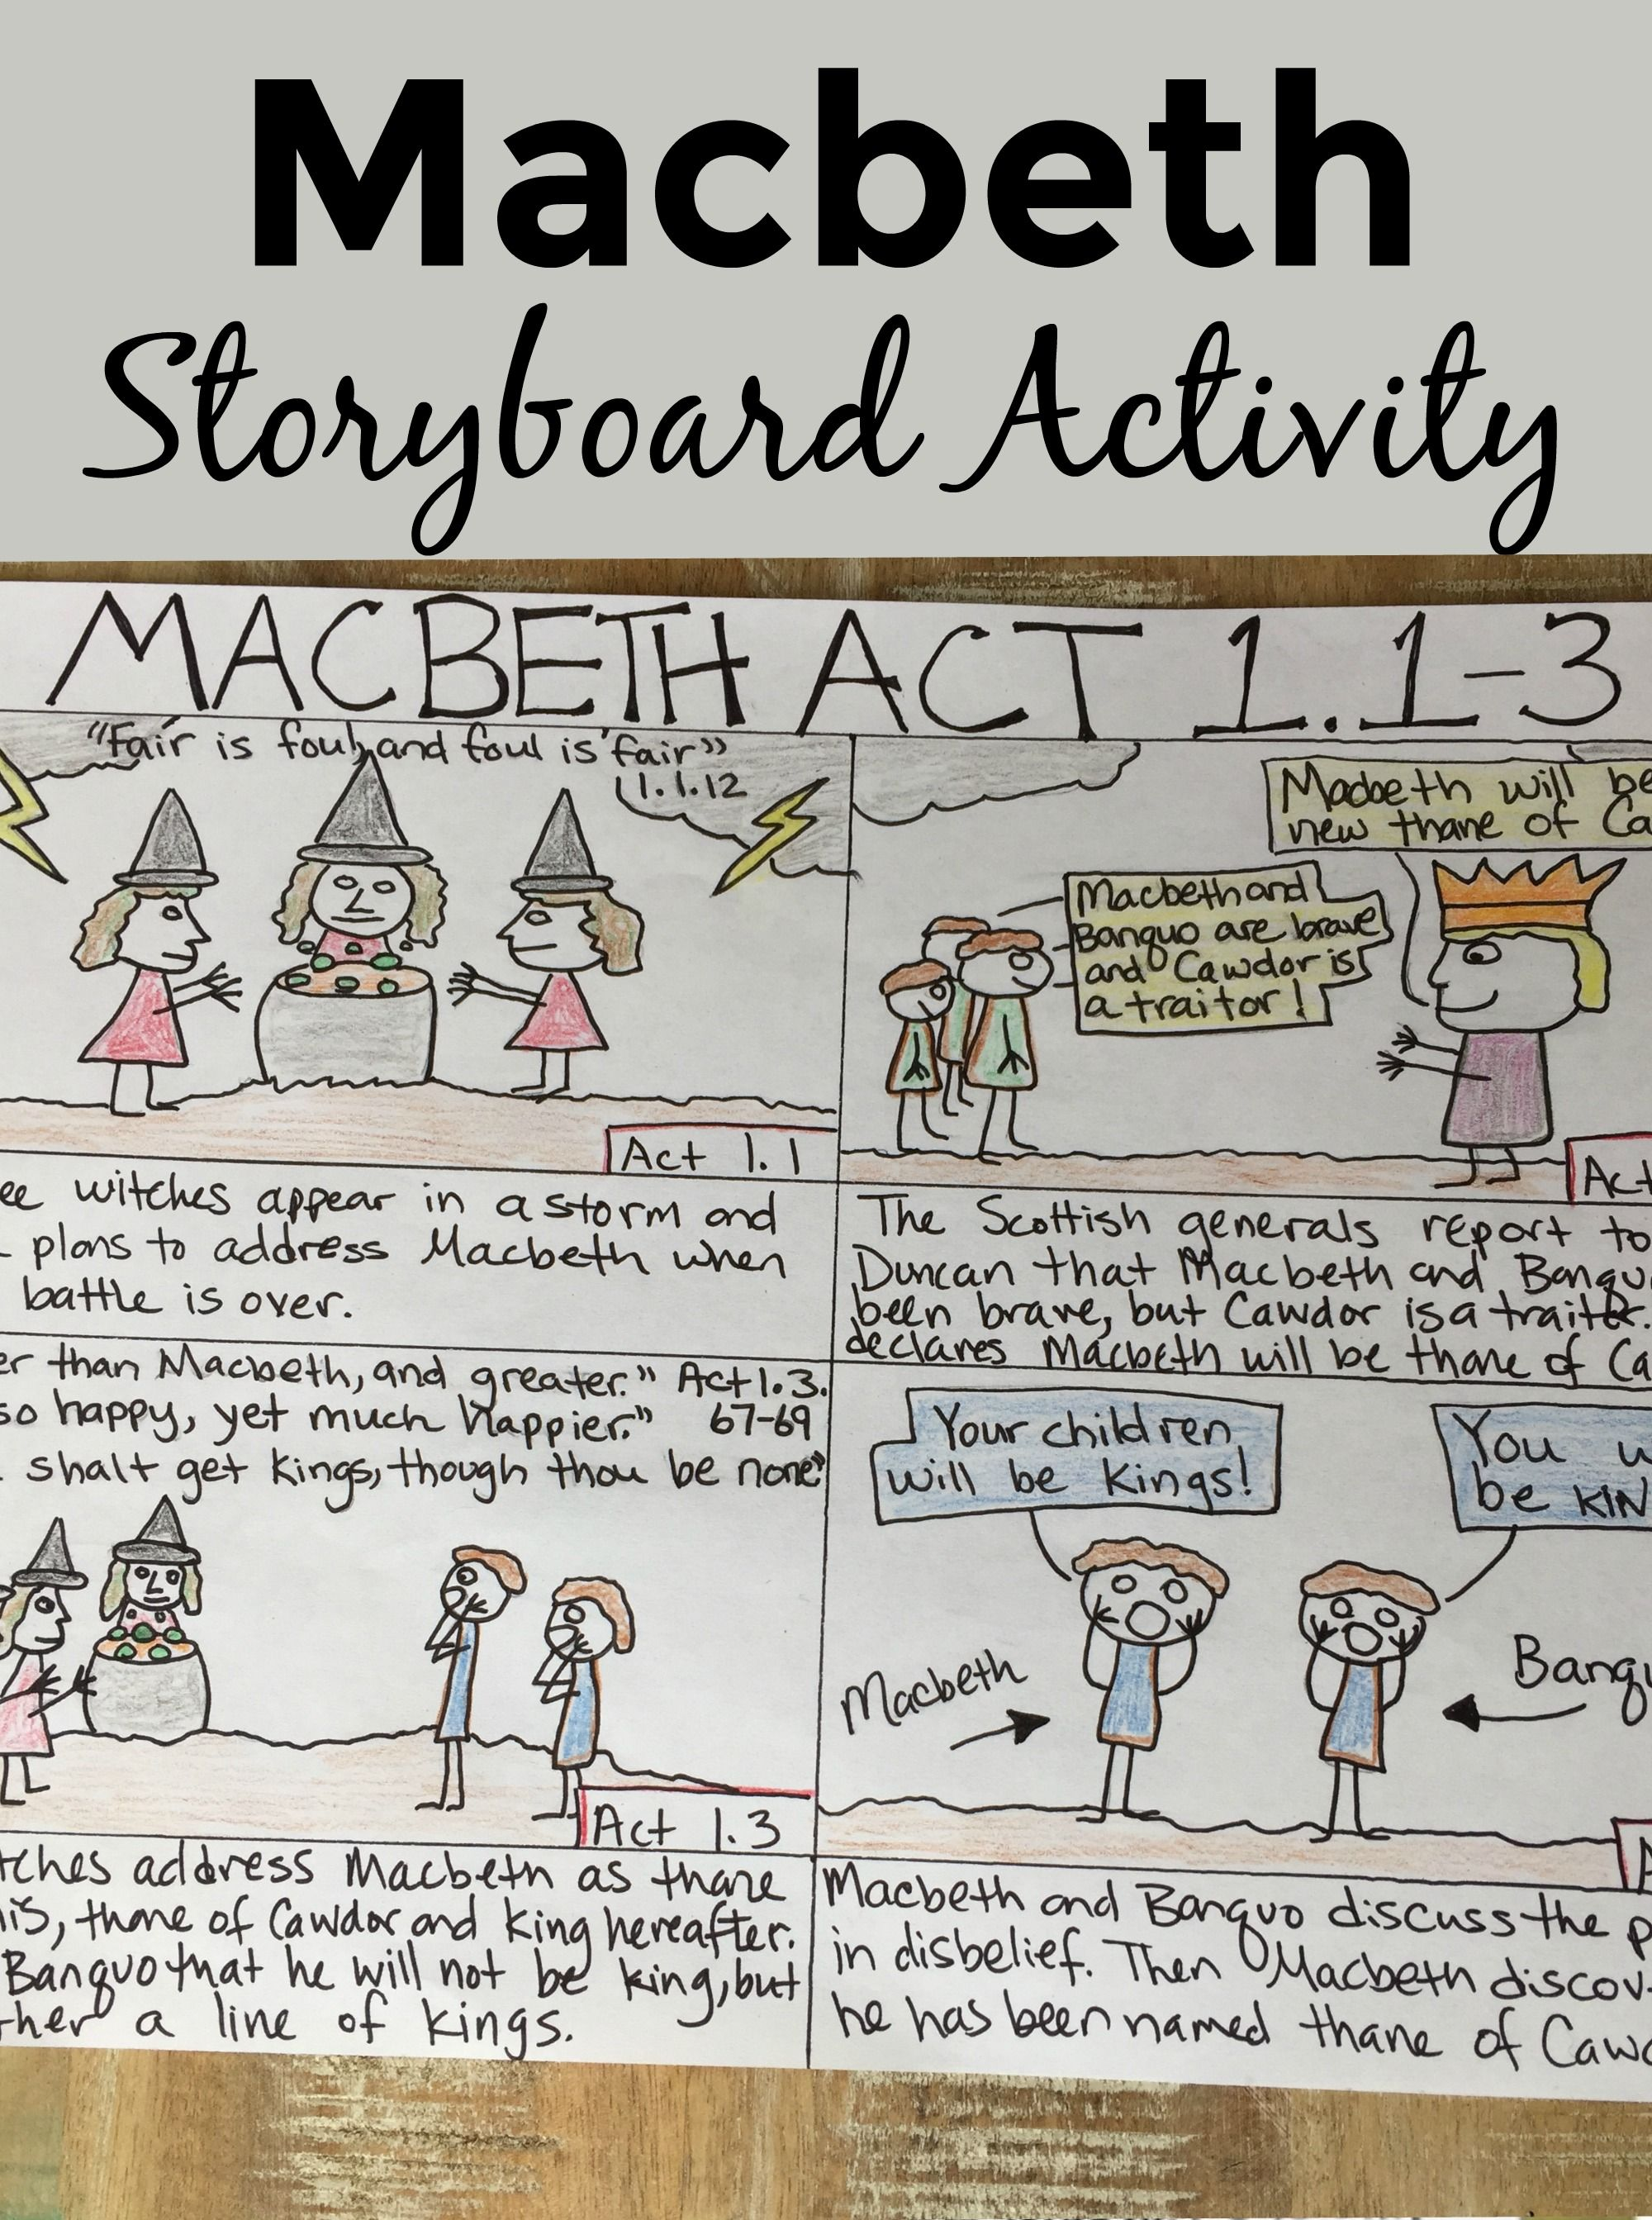 Macbeth Lesson Plan Help Your Student Dig Deep Into With Thi Storyboard Activity Stude High School Literature Paraphrase Act 3